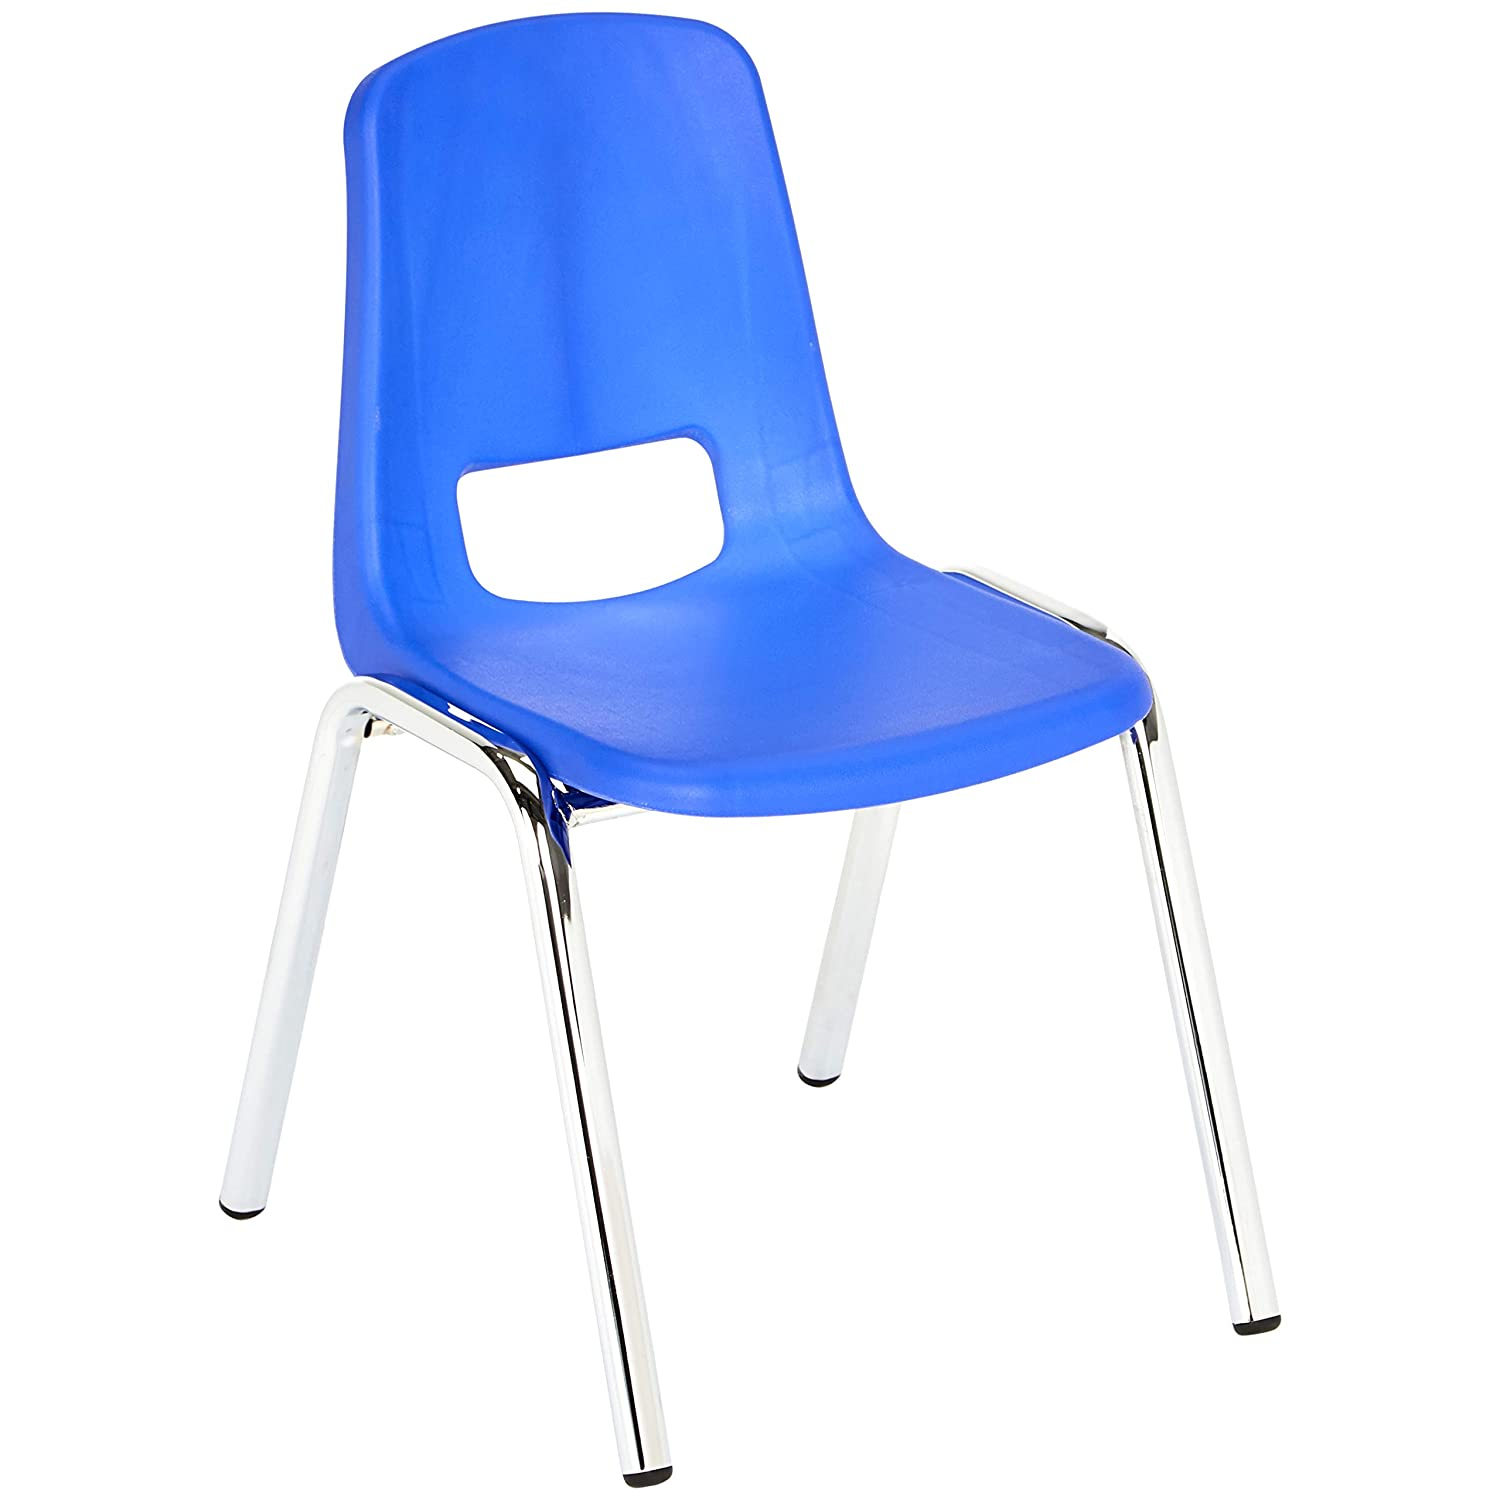 AmazonBasics 12 Inch School Stackable Chair – Chrome Legs, Blue, 6-Pack